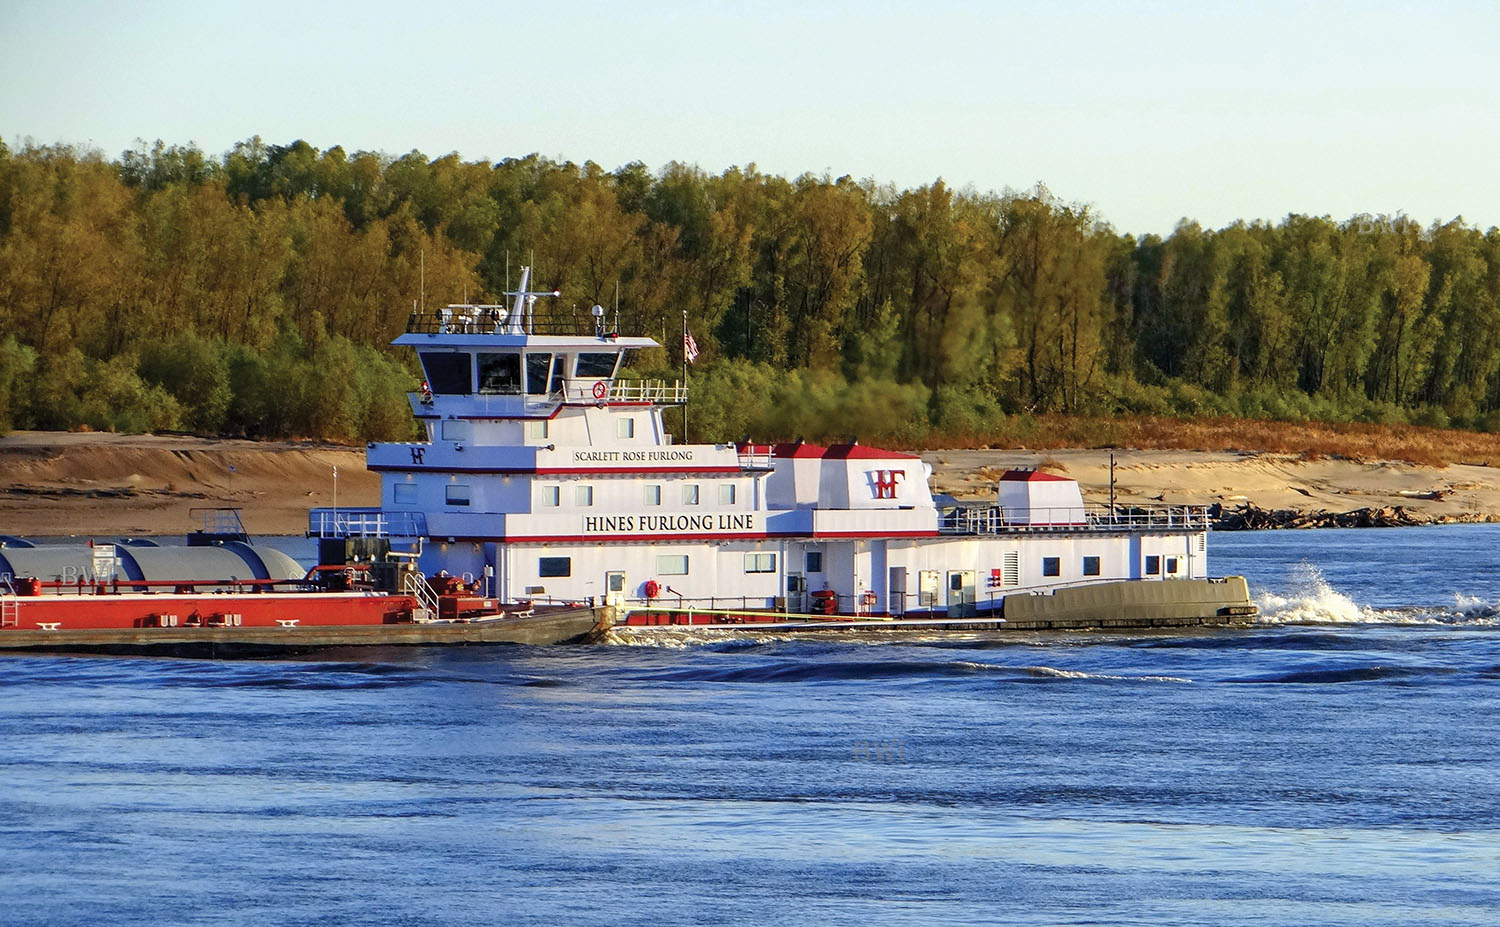 C&C Delivers Triple-Screw Towboat To Hines Furlong Line